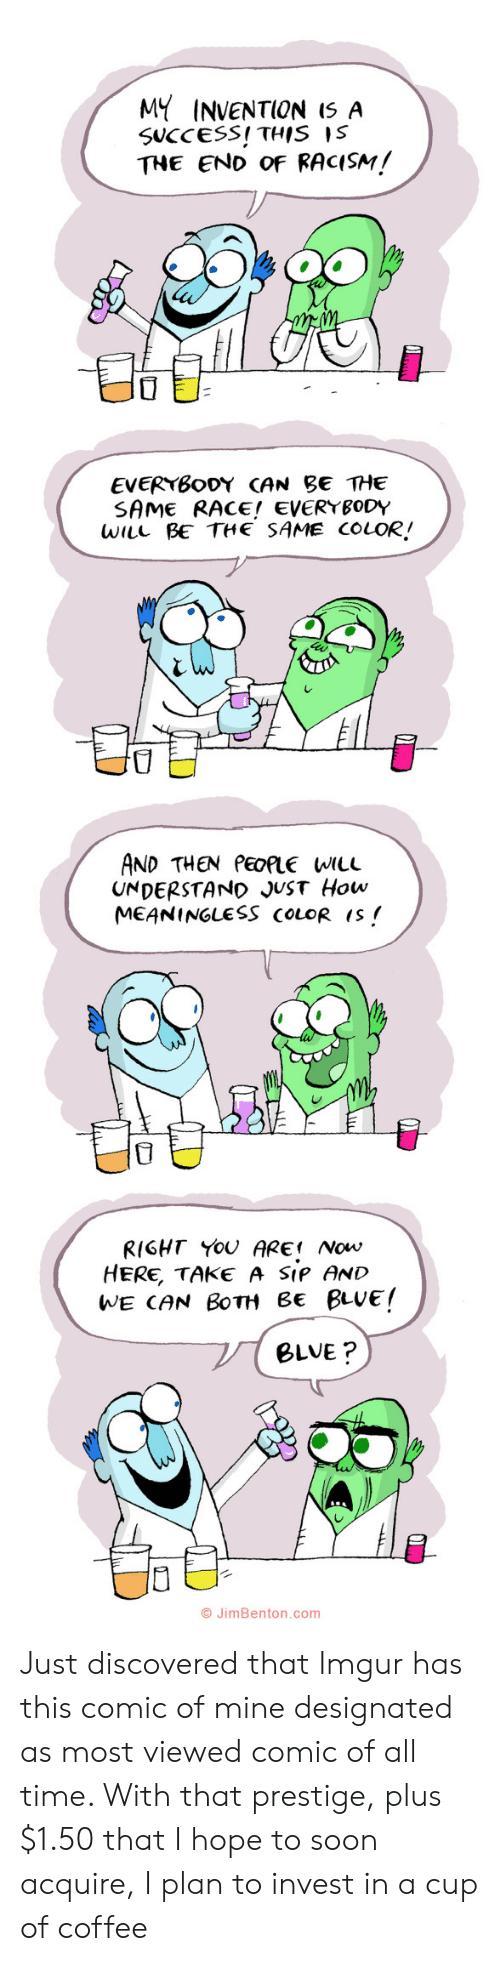 Designated: MY INVENTION I5 A  SUCCESS! THIS IS  THE END OF RACISM!  EVERYBODY CAN BE THE  SAME RACE! EVERYBODY  WILL BE THE SAME COLOR!  AND THEN PEOPLE WILL  UNDERSTAND JUST How  MEANINGLESS COLOR IS  RIGHT YOU ARE Now  HERE, TAKE A SIP AND  WE CAN BOTH Be BLUE!  BLVE?  O JimBenton.com  י Just discovered that Imgur has this comic of mine designated as most viewed comic of all time. With that prestige, plus $1.50 that I hope to soon acquire, I plan to invest in a cup of coffee